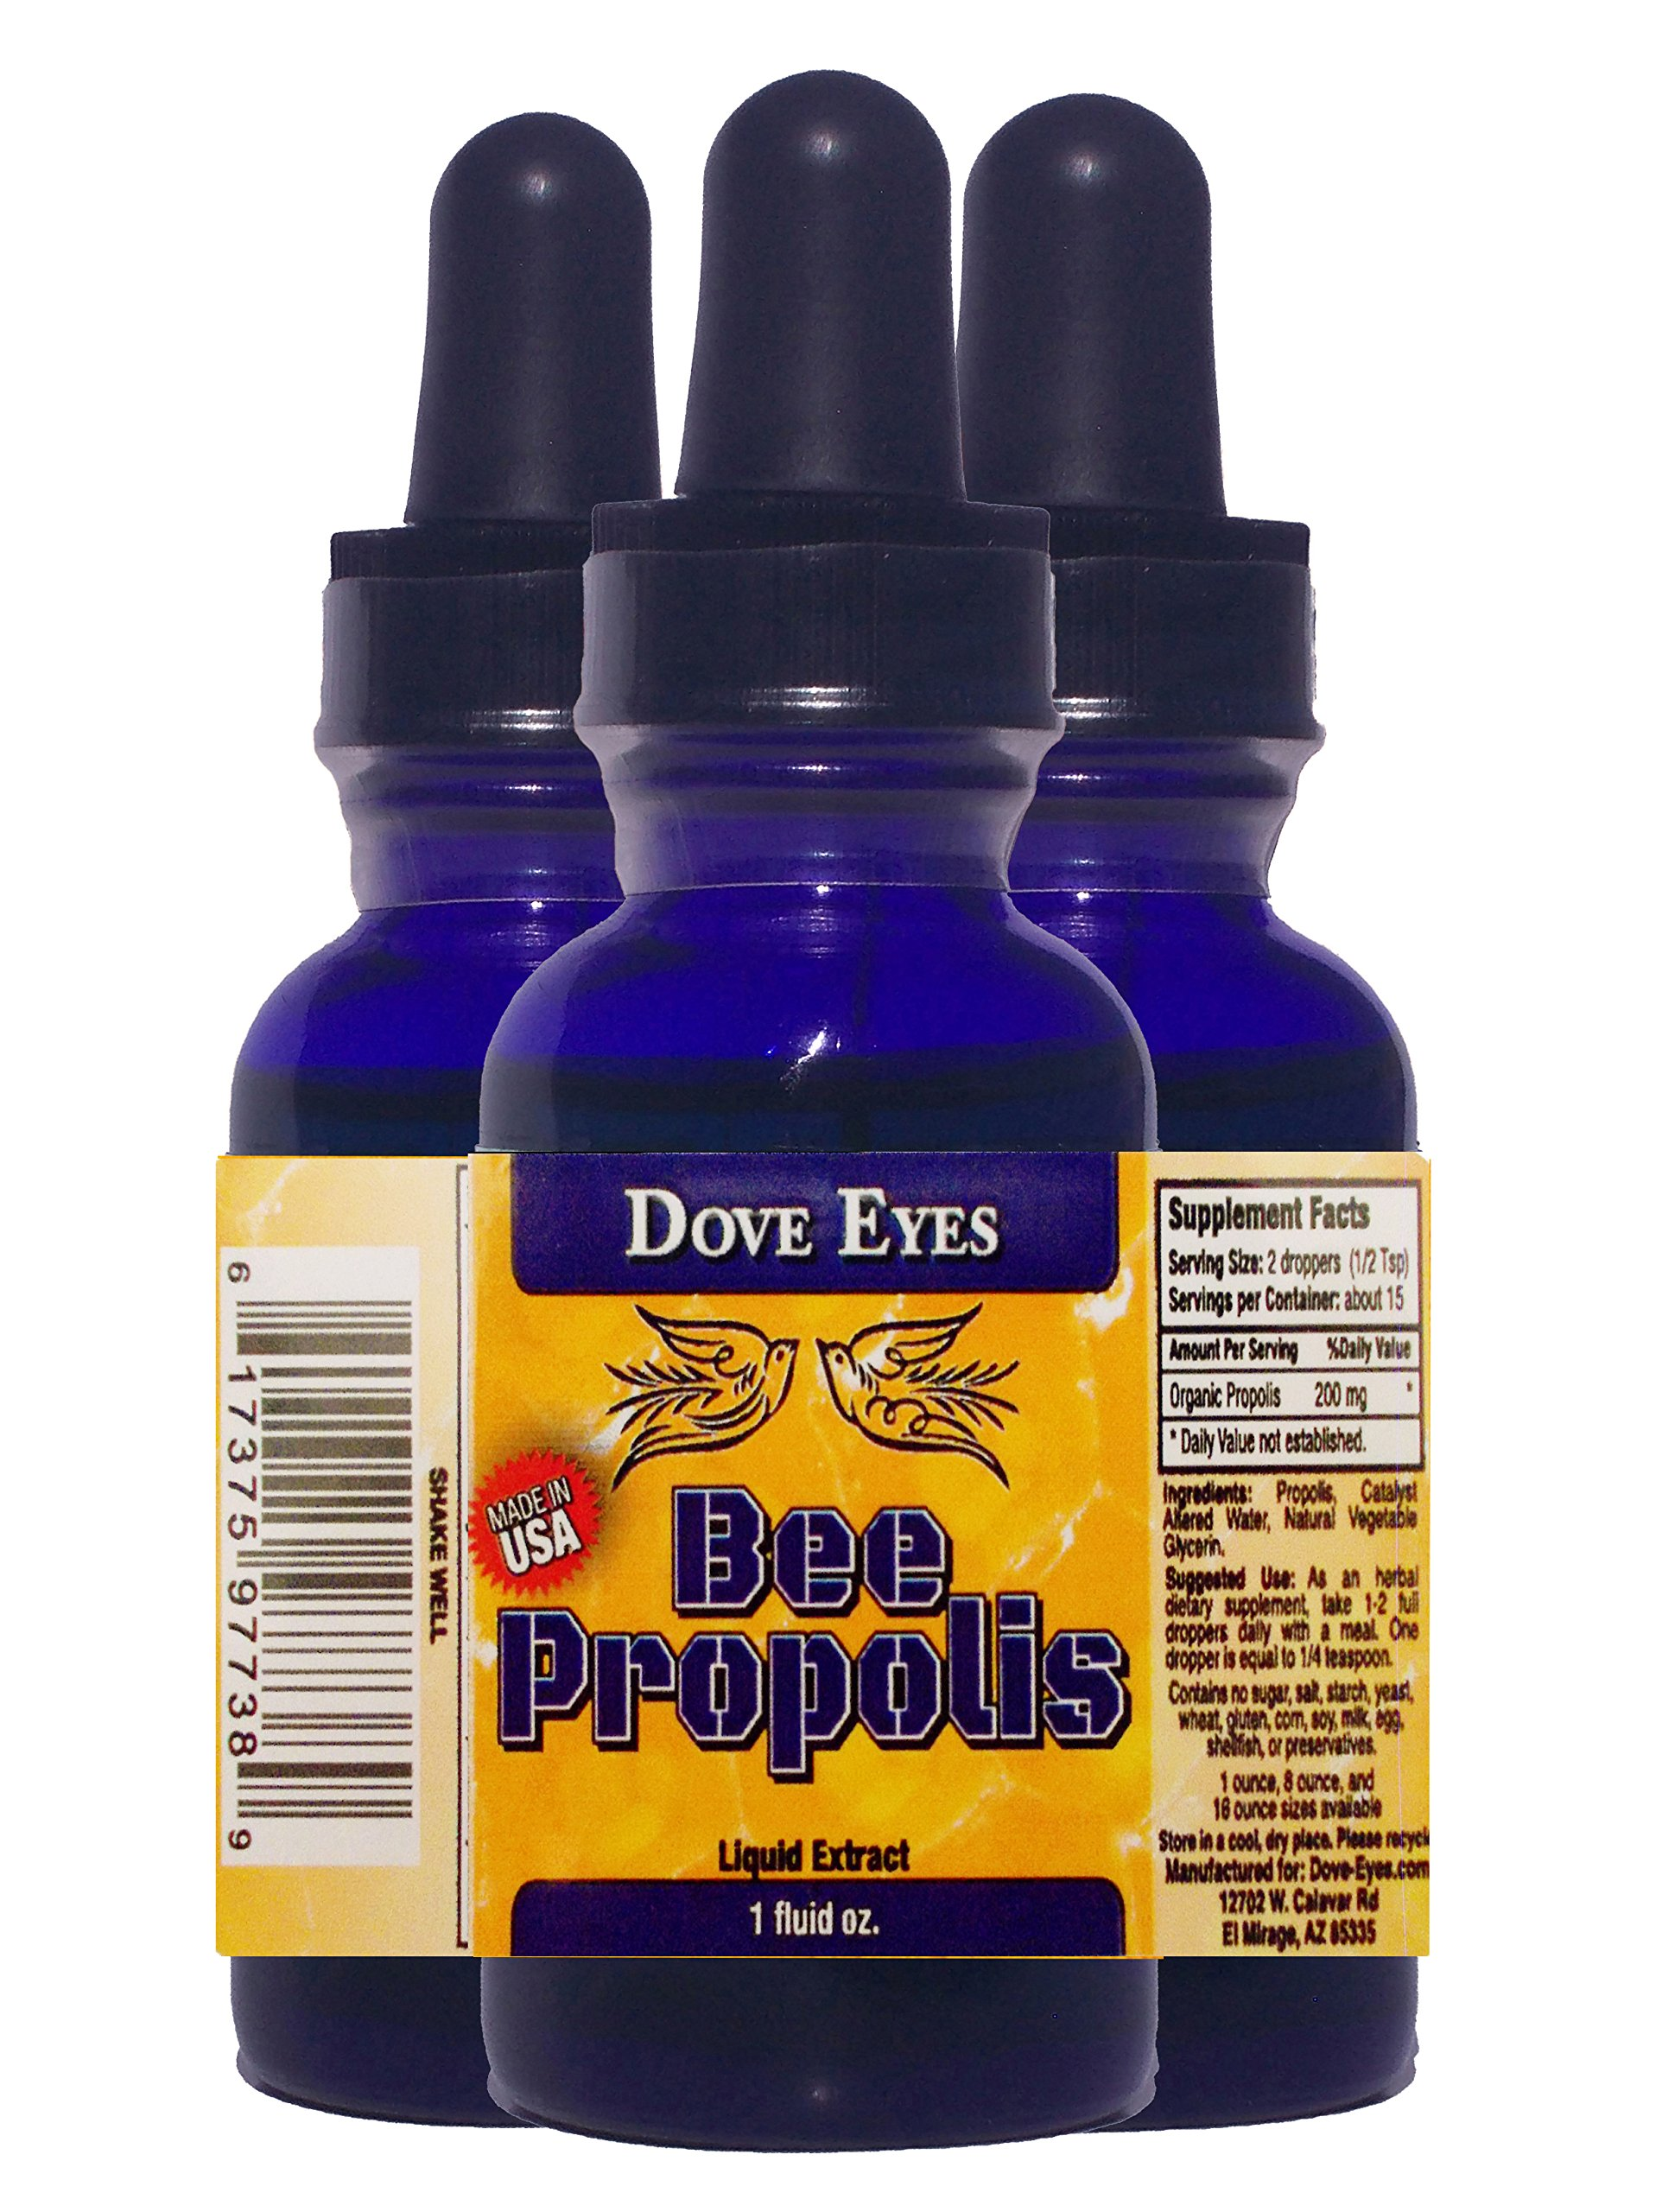 """BEE PROPOLIS from """"DOVE EYES""""- Organic Liquid Extract – Recognized to have Antioxidant, Antibiotic & Antiseptic Qualities – Boost Your System! – Get a Natural System Tune-up Now! MADE IN AMERICA! –Alcohol Free! – Protect Yourself- BUY THIS BEST PROPOLIS BRAND NOW!"""